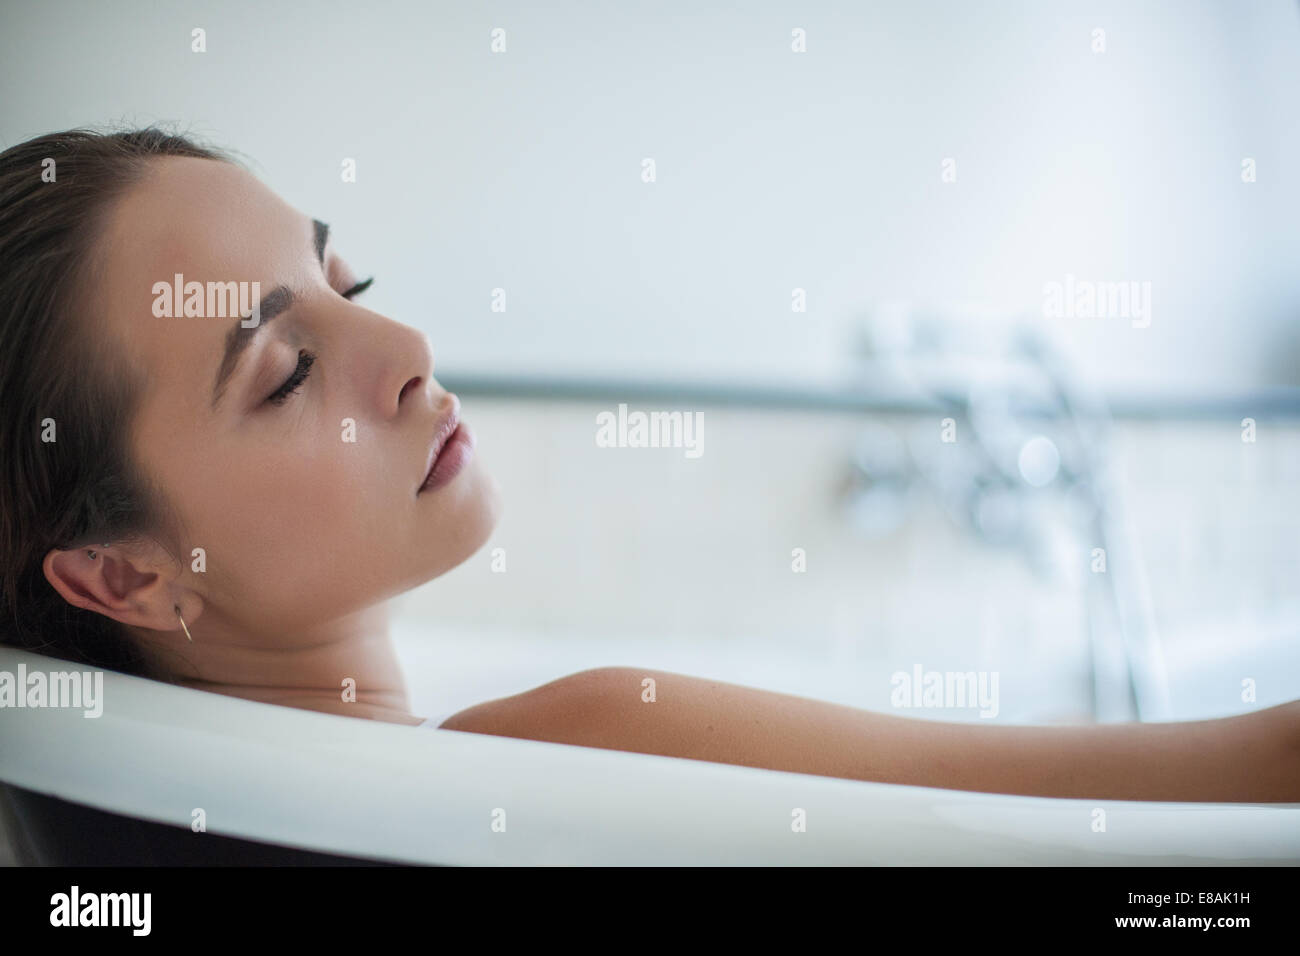 Close up of serene young woman asleep in bath - Stock Image